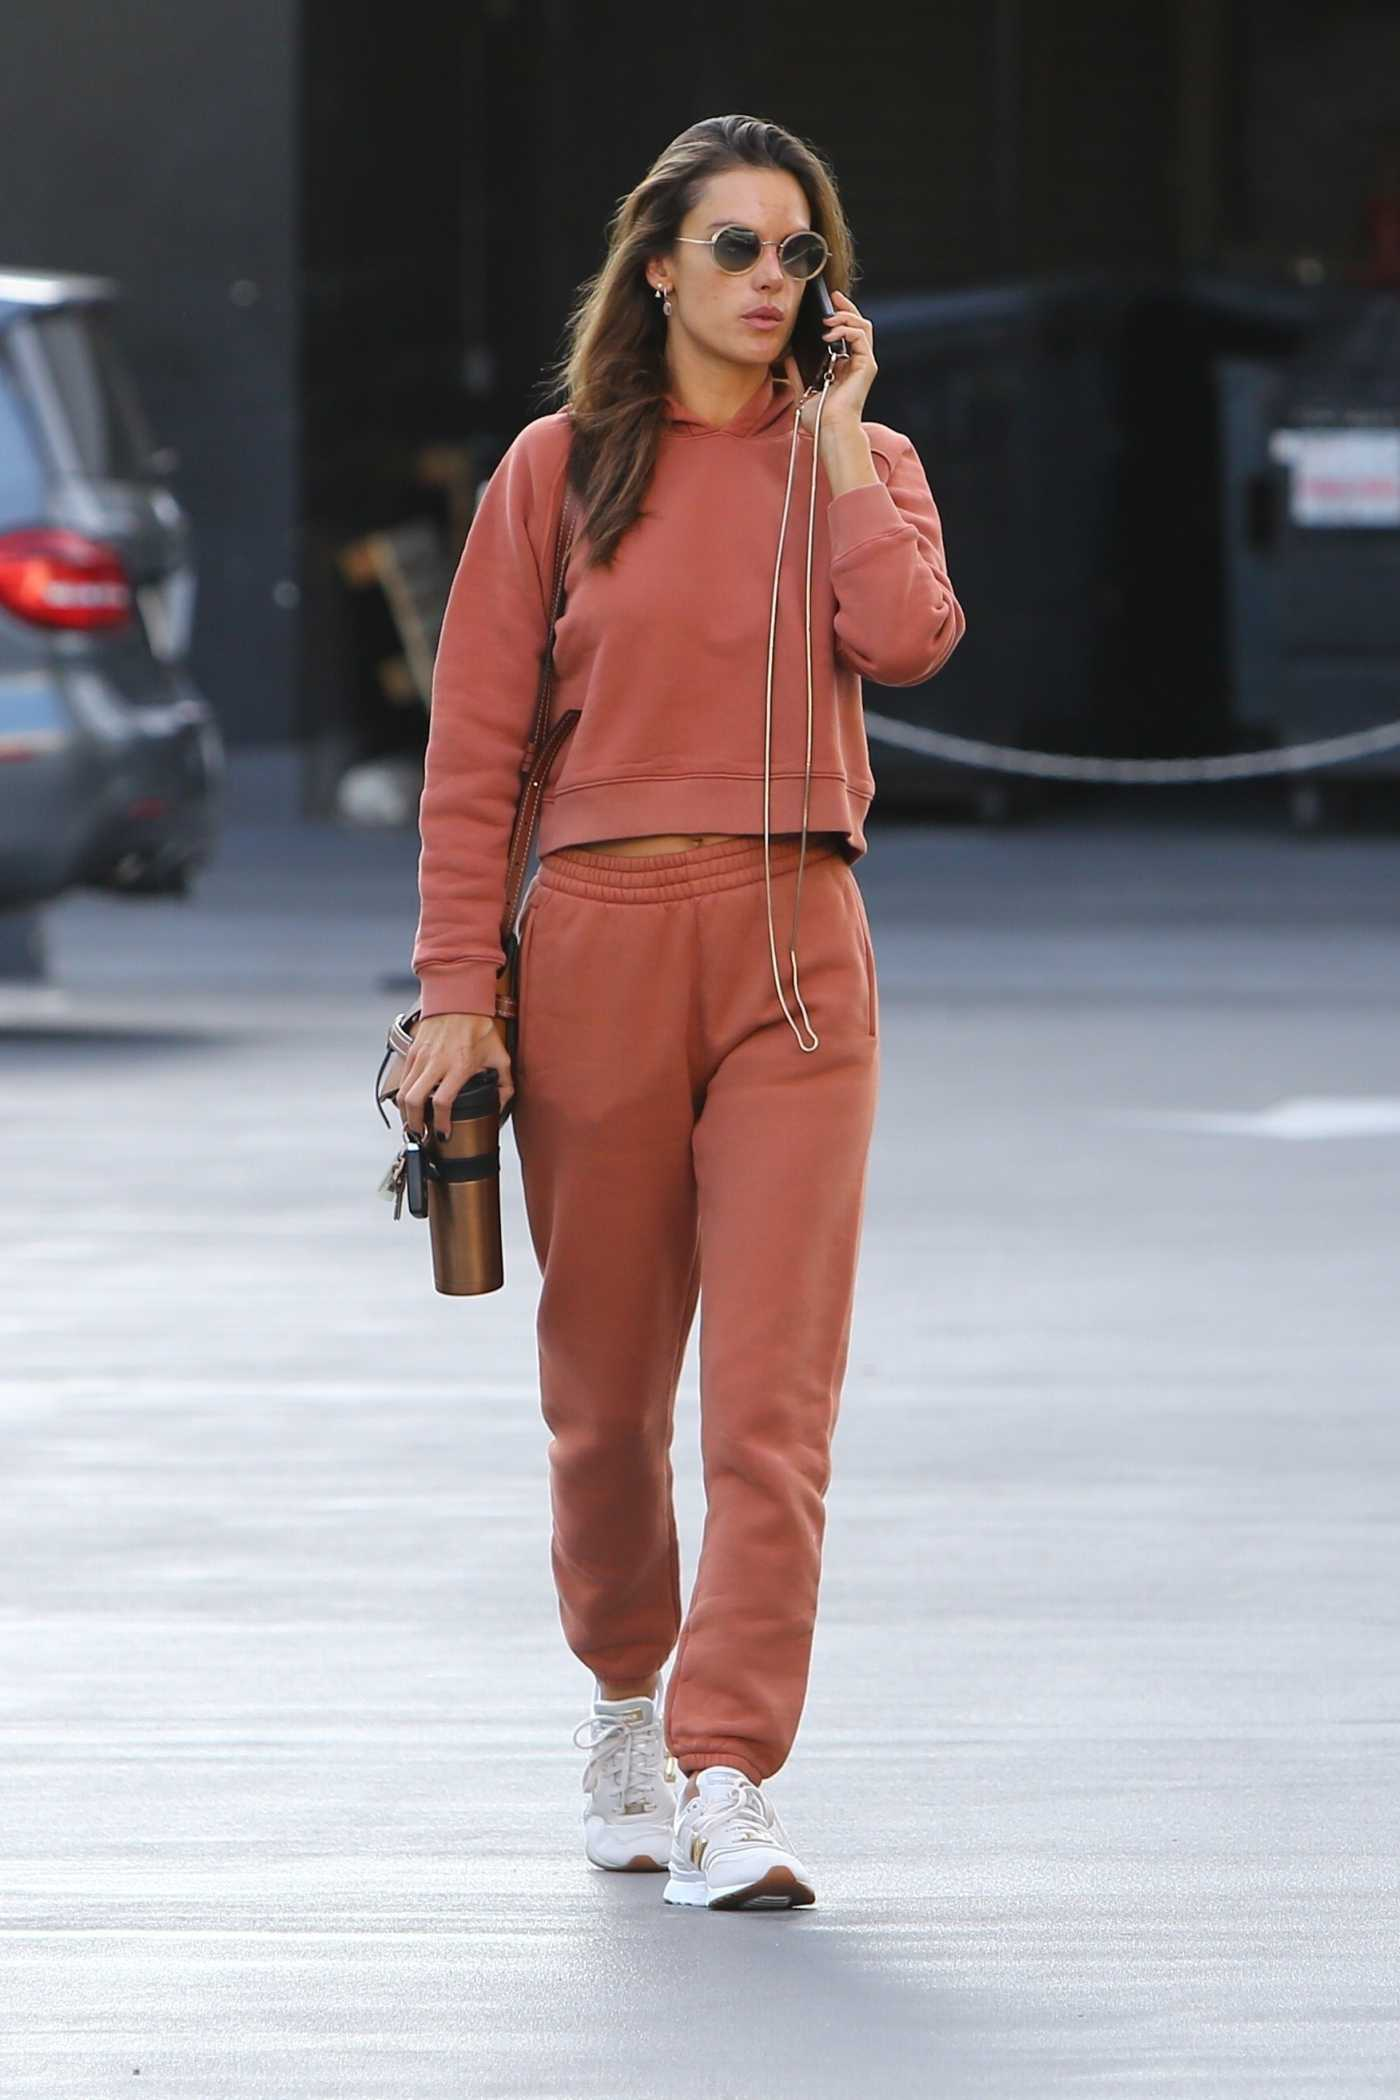 Alessandra Ambrosio in a Red Sweatsuit Was Seen Out in Brentwood 01/28/2020